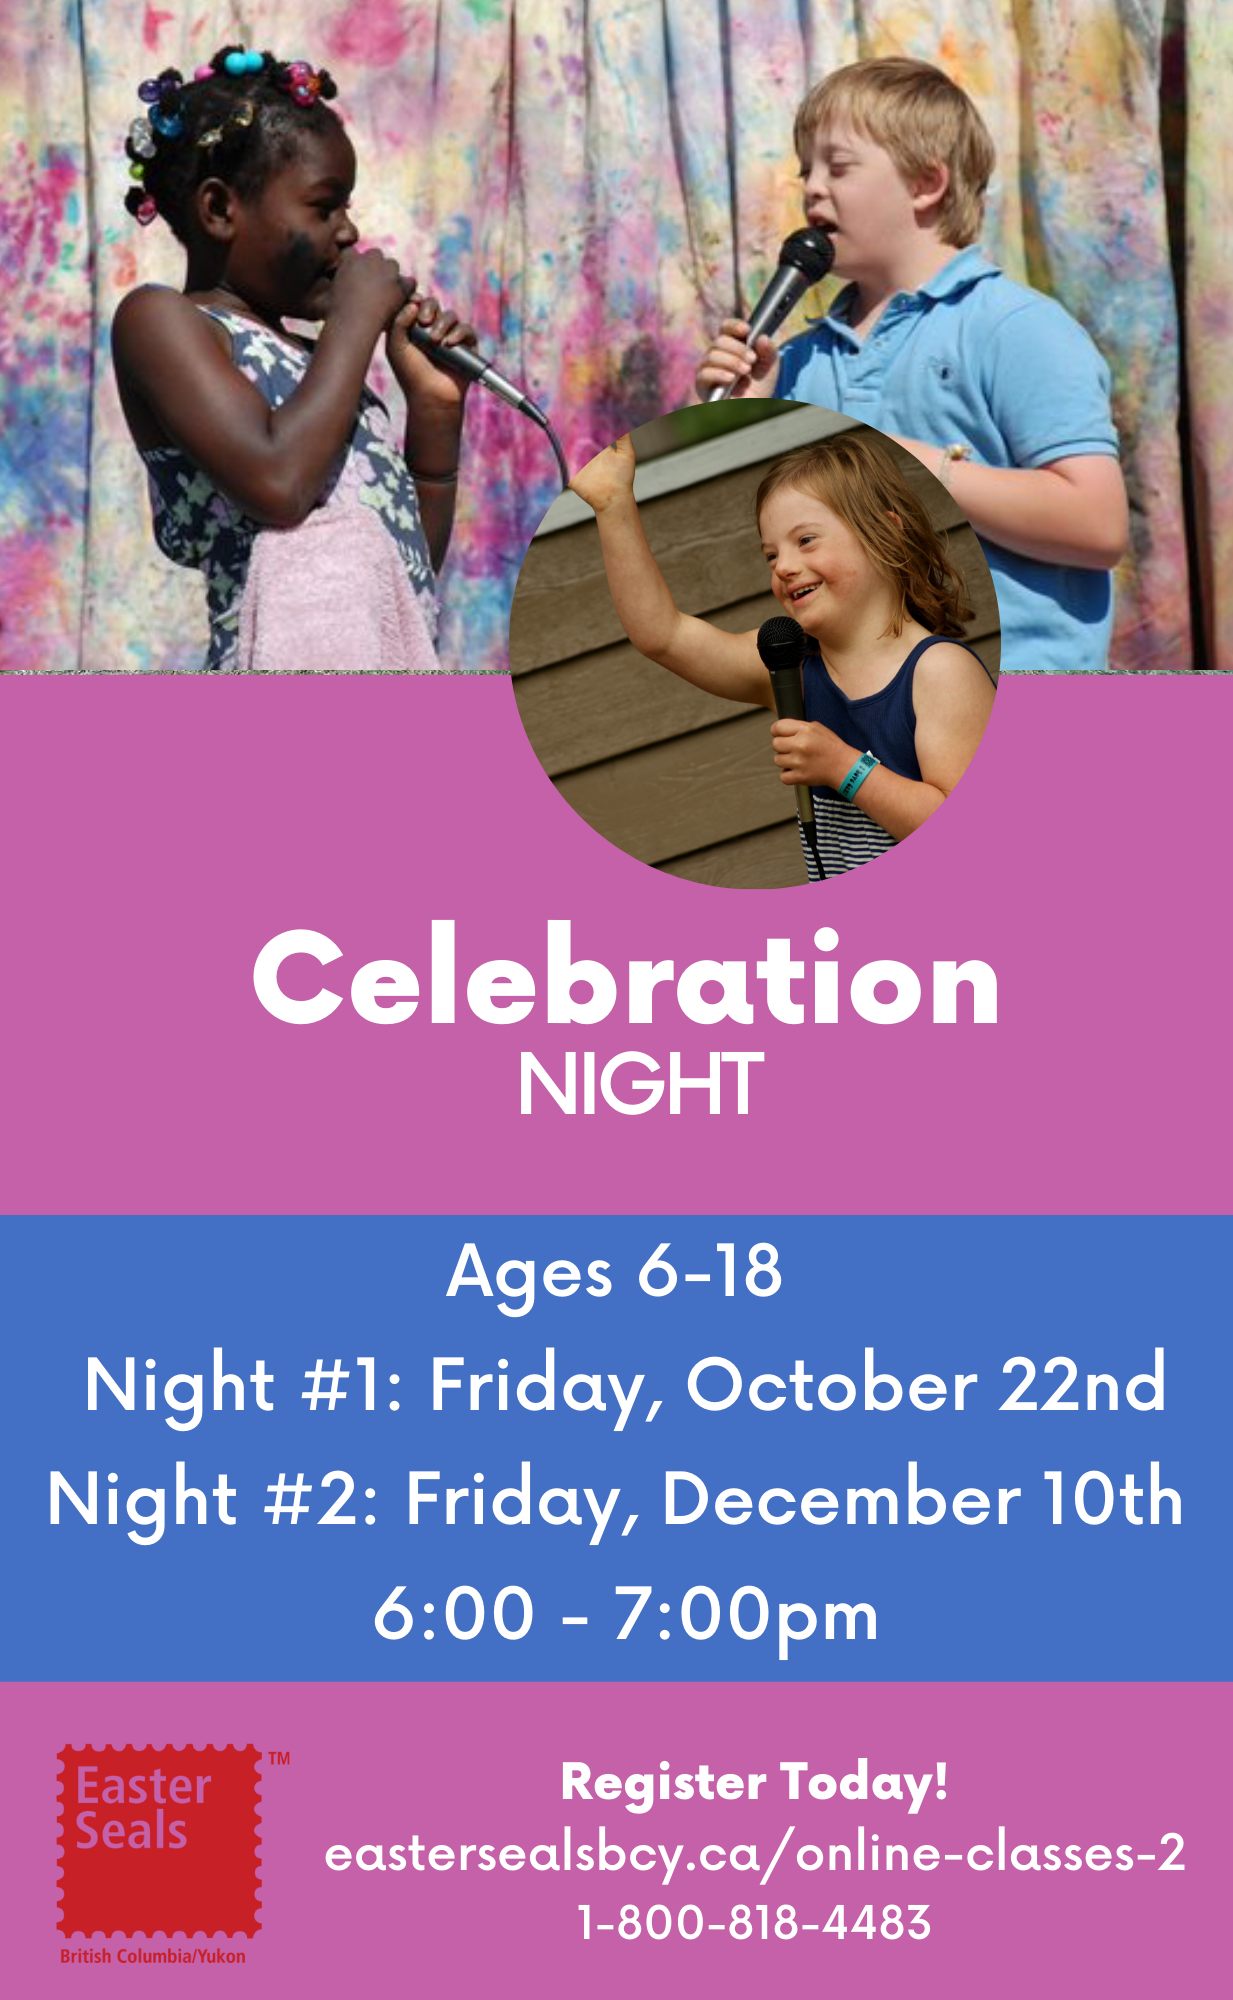 Celebration Night for Ages 6-18